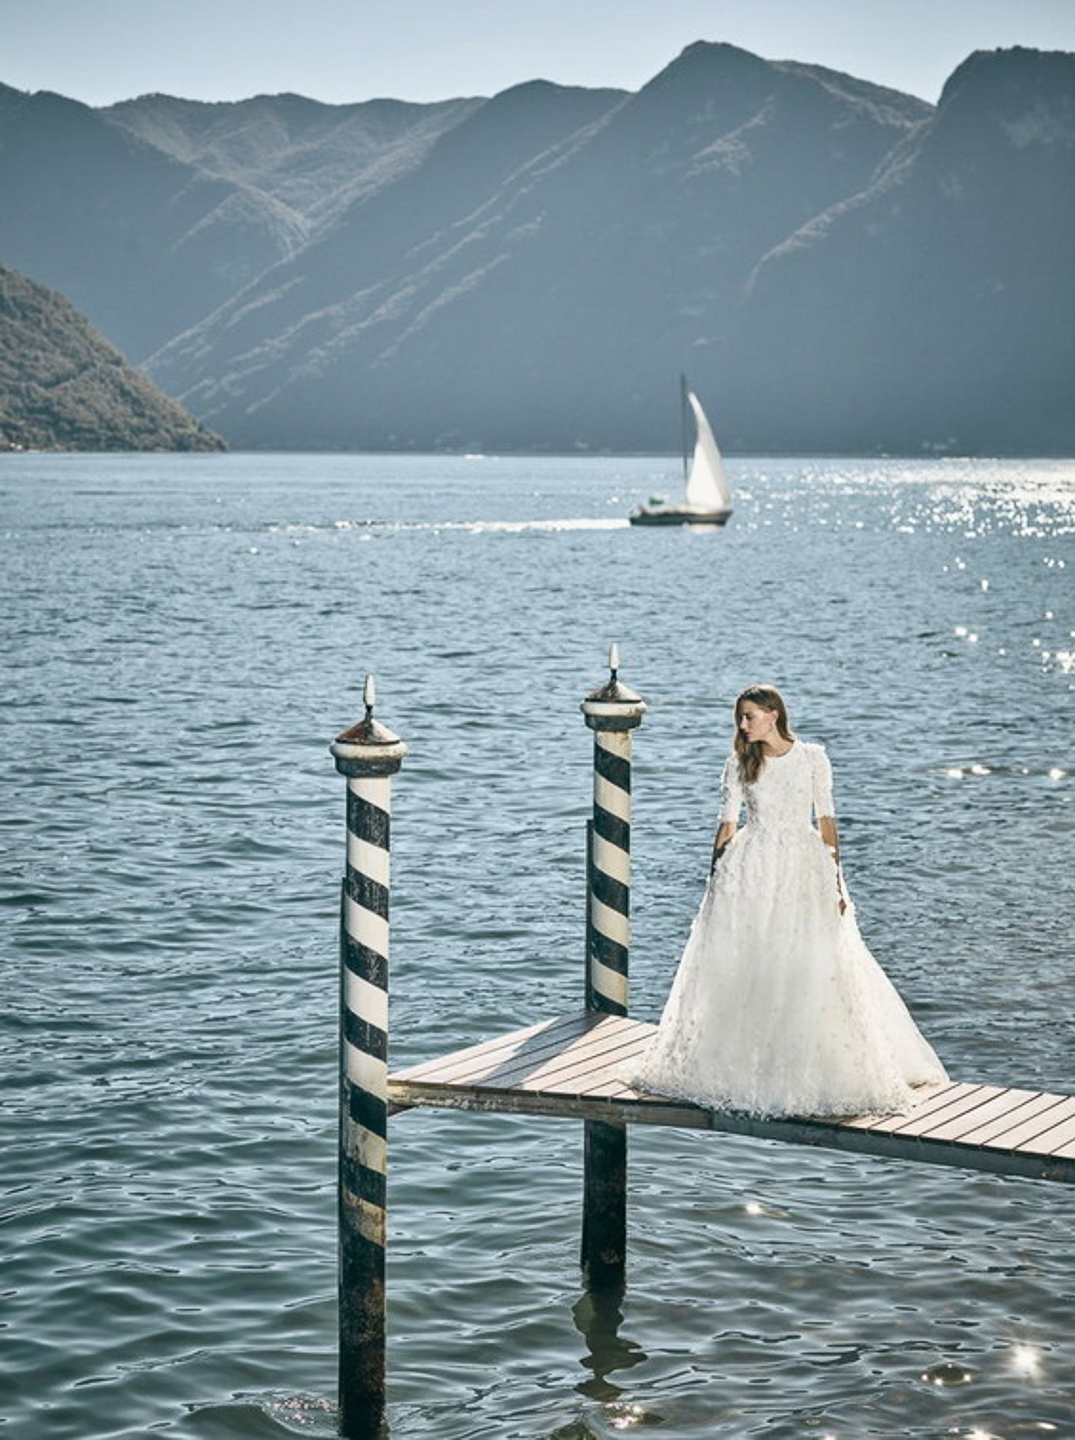 Villa Balbiano luxury property Lake Como Milan Italy available exclusive private rent rental photo shoot session couture dress stunning model Harpers Bazzar US water best view Italian nature